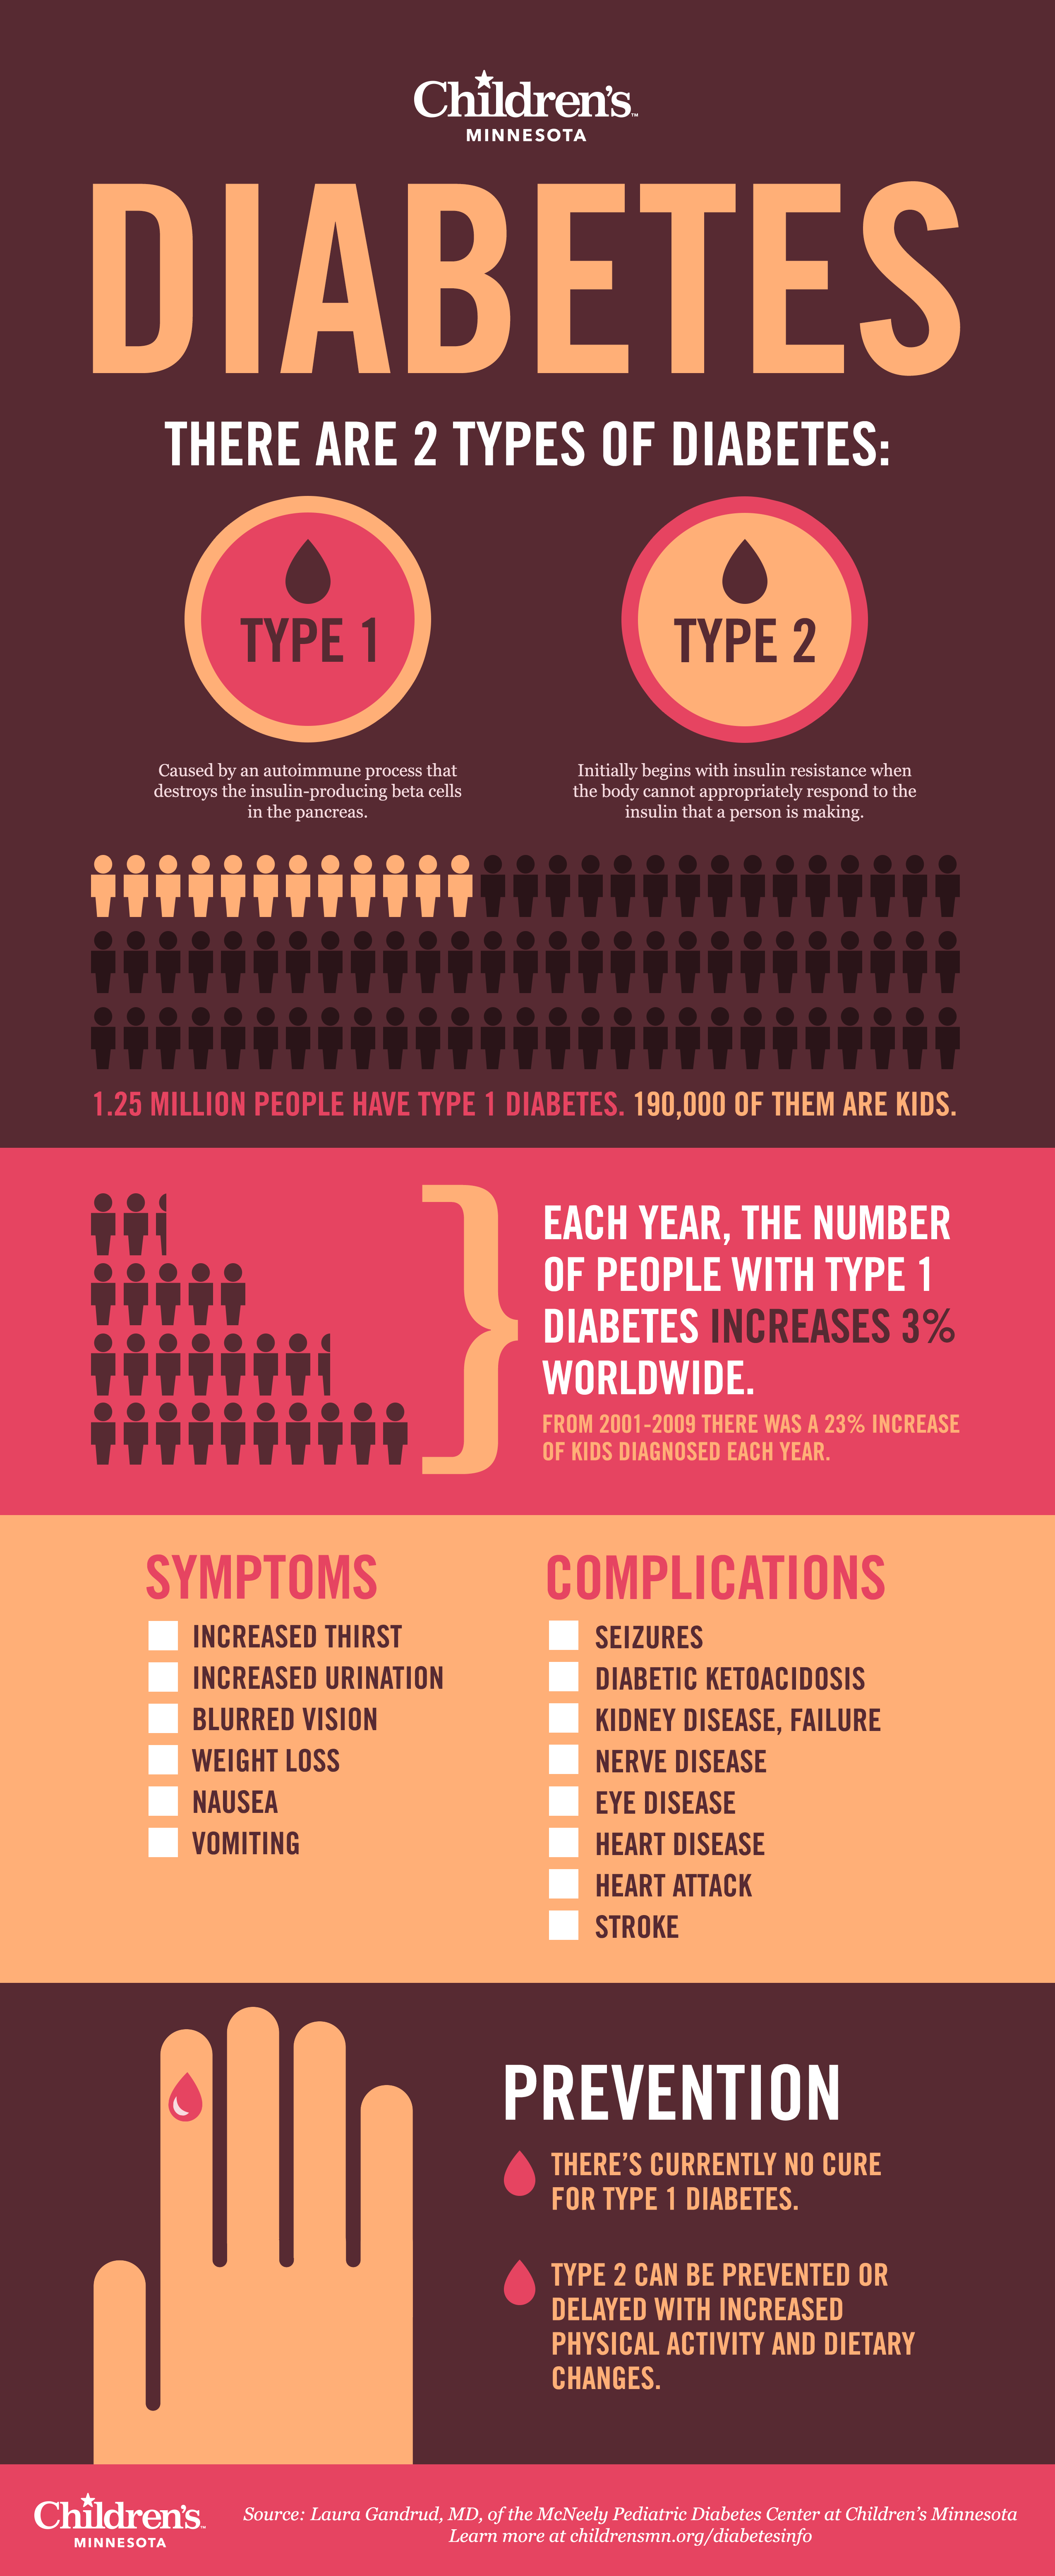 Diabetes Facts Infographic from Children's Minnesota